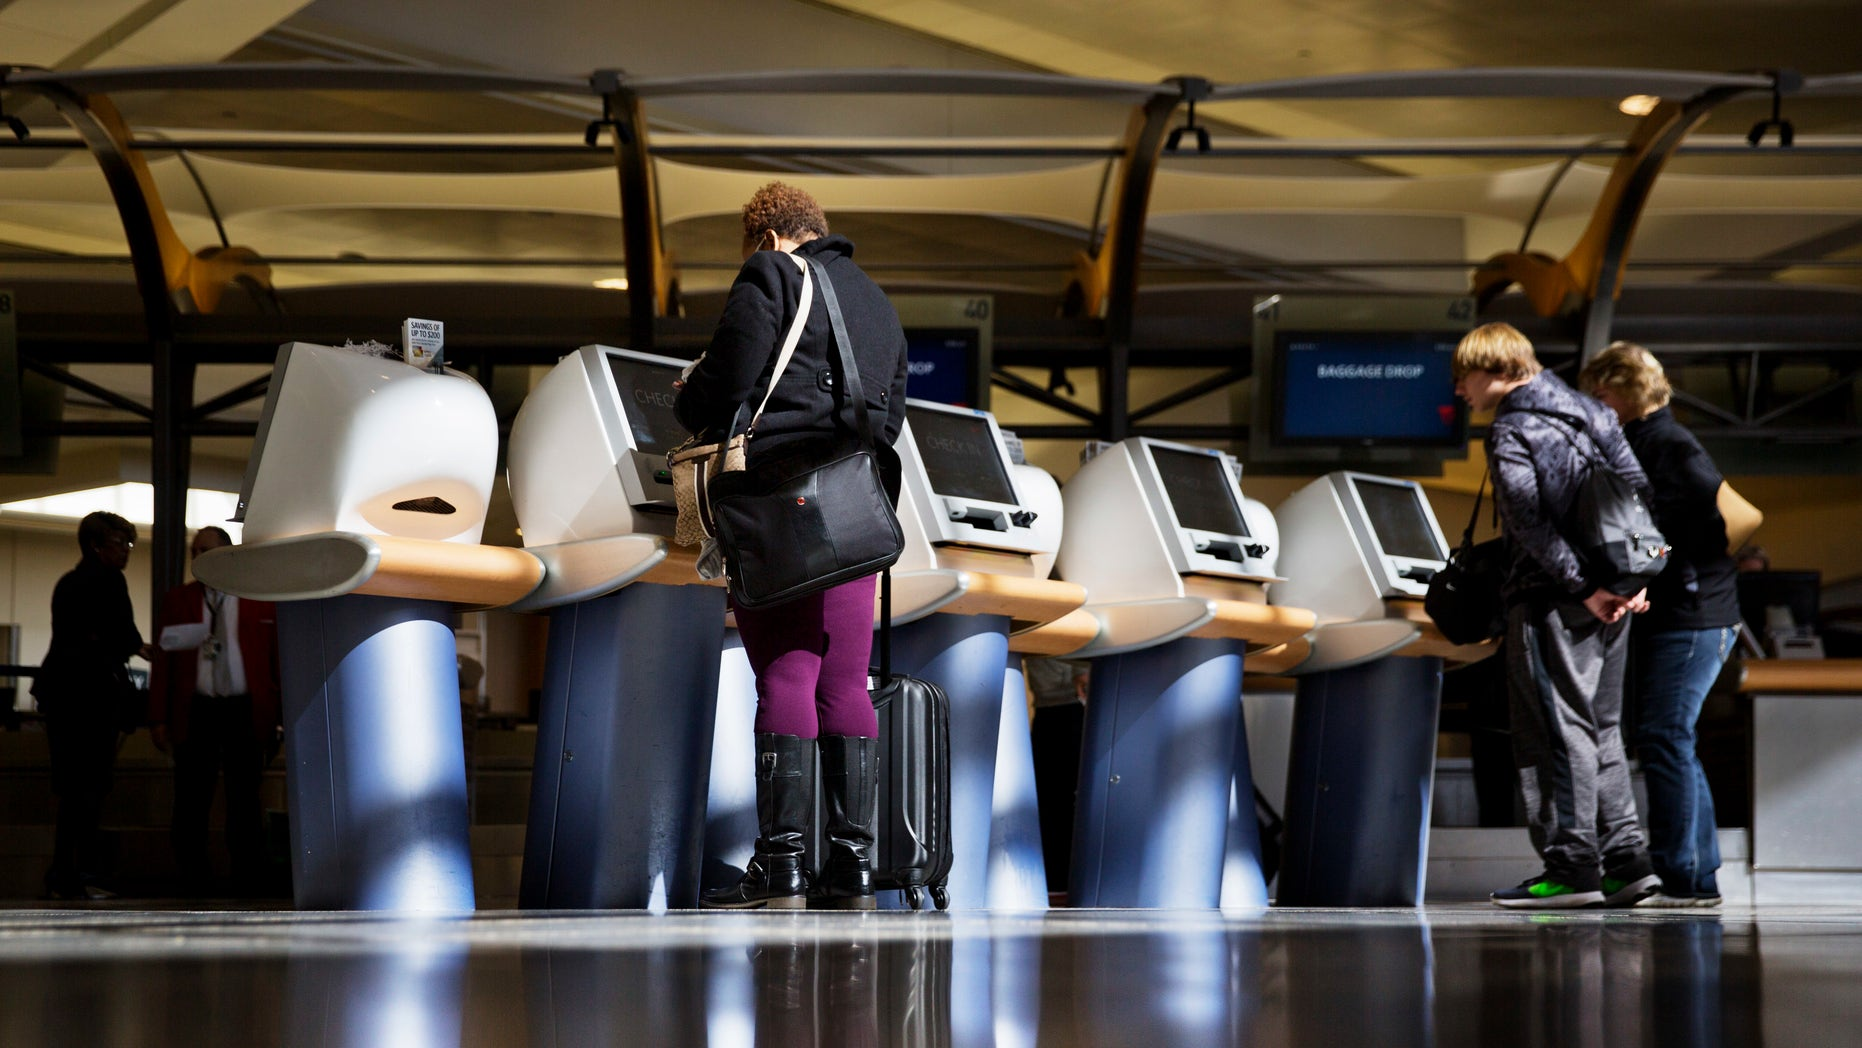 In this 2017 file, passengers are registered on Delta Air Lines at airport booths. Major American airlines say they will soon change their ticket sales process to give passengers the opportunity to identify themselves as men or women.